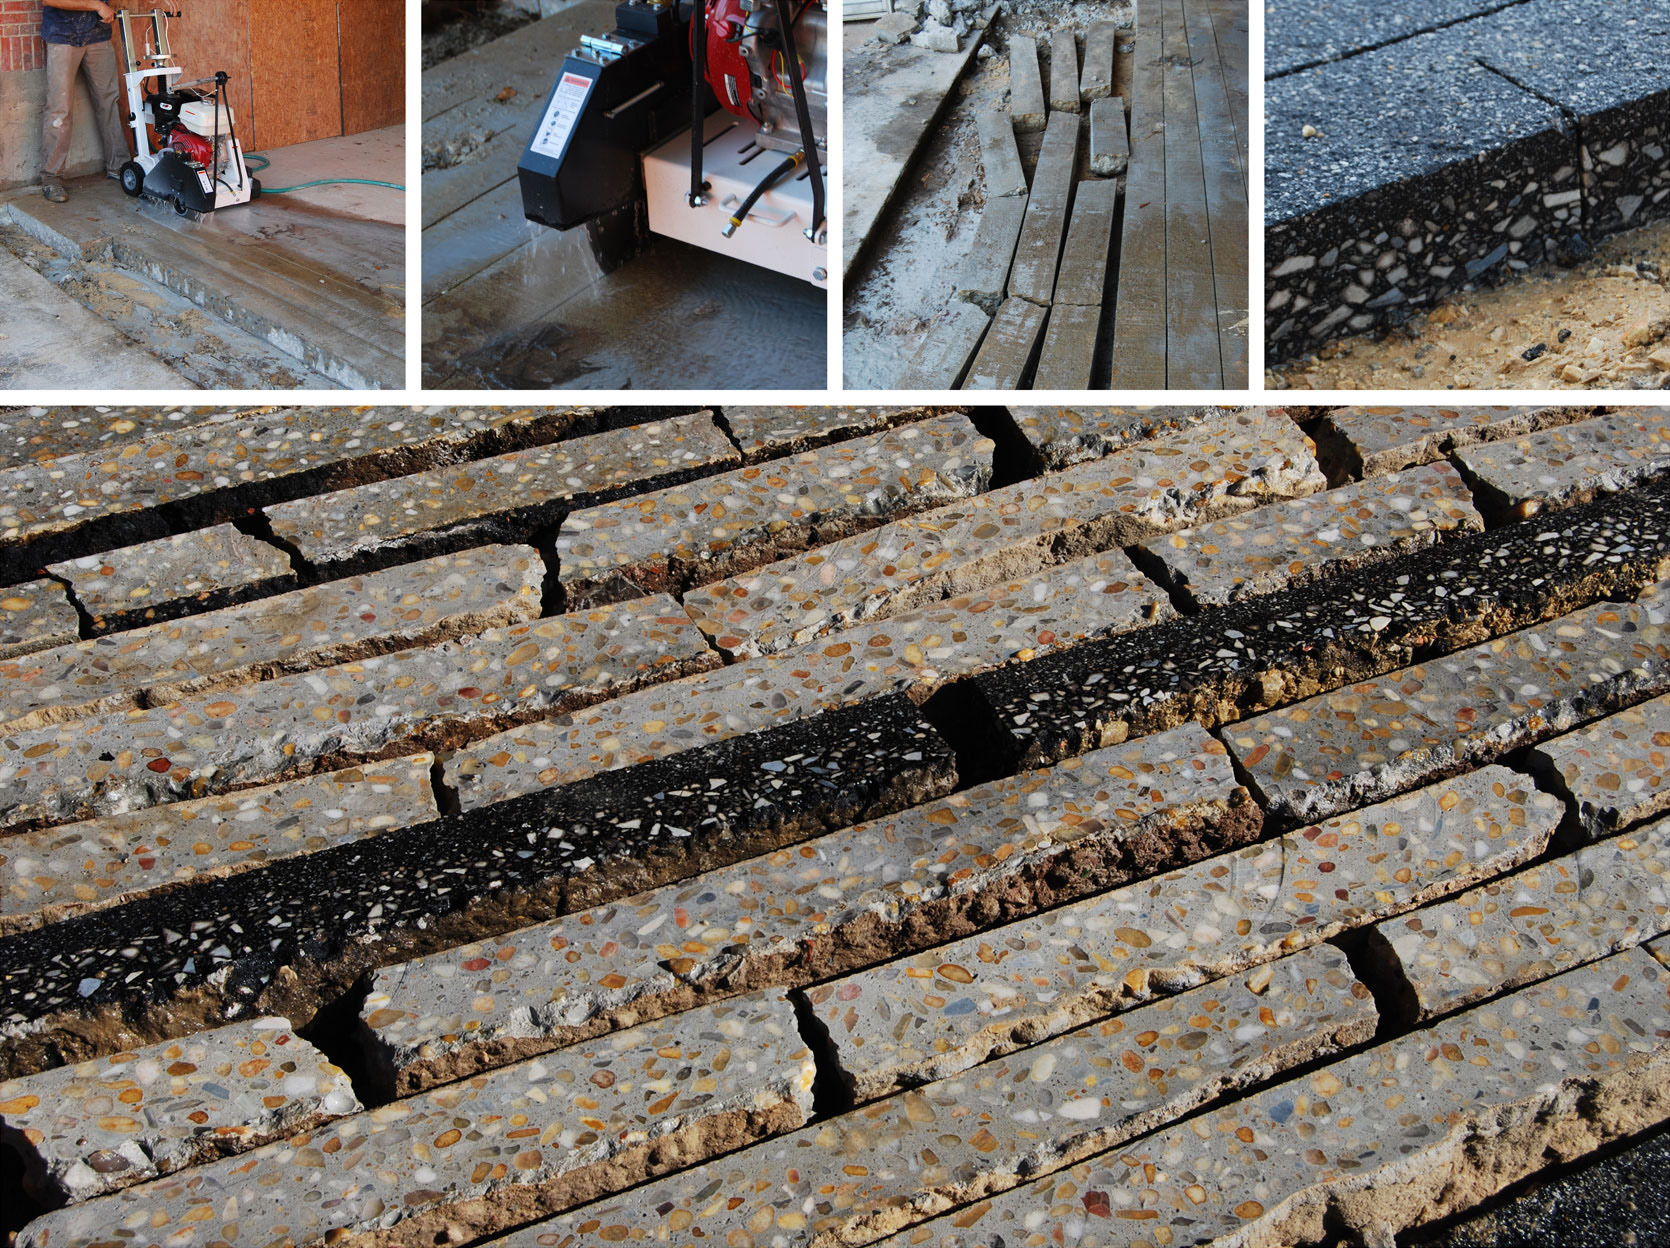 MATERIAL HARVEST + REUSE: Existing concrete paving was carefully extracted and reused as permeable paving, walkways, and edging.